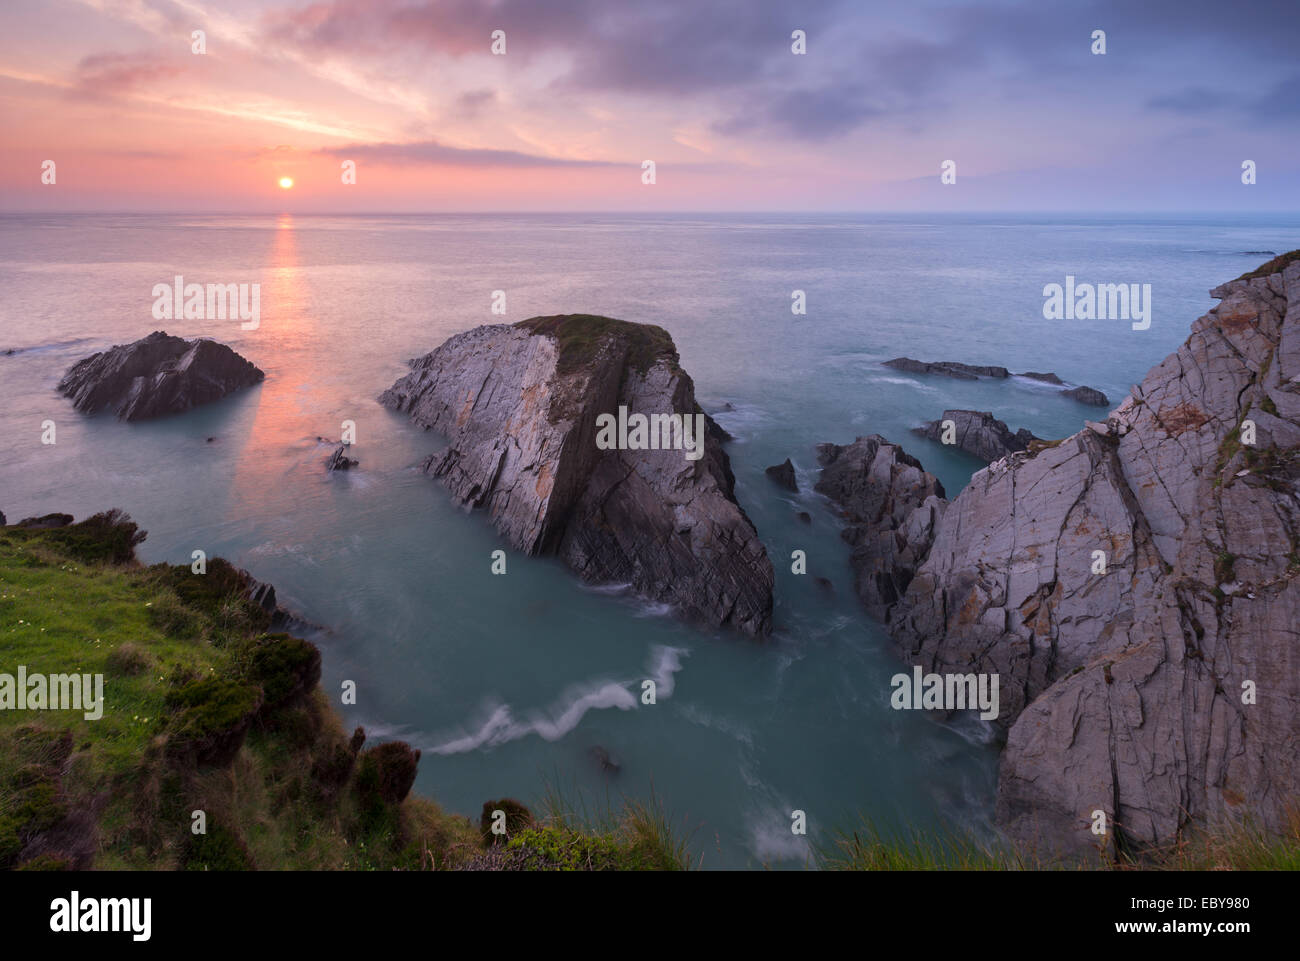 Sunset over the North Devon Coast, Devon, England. Spring (April) 2014. - Stock Image